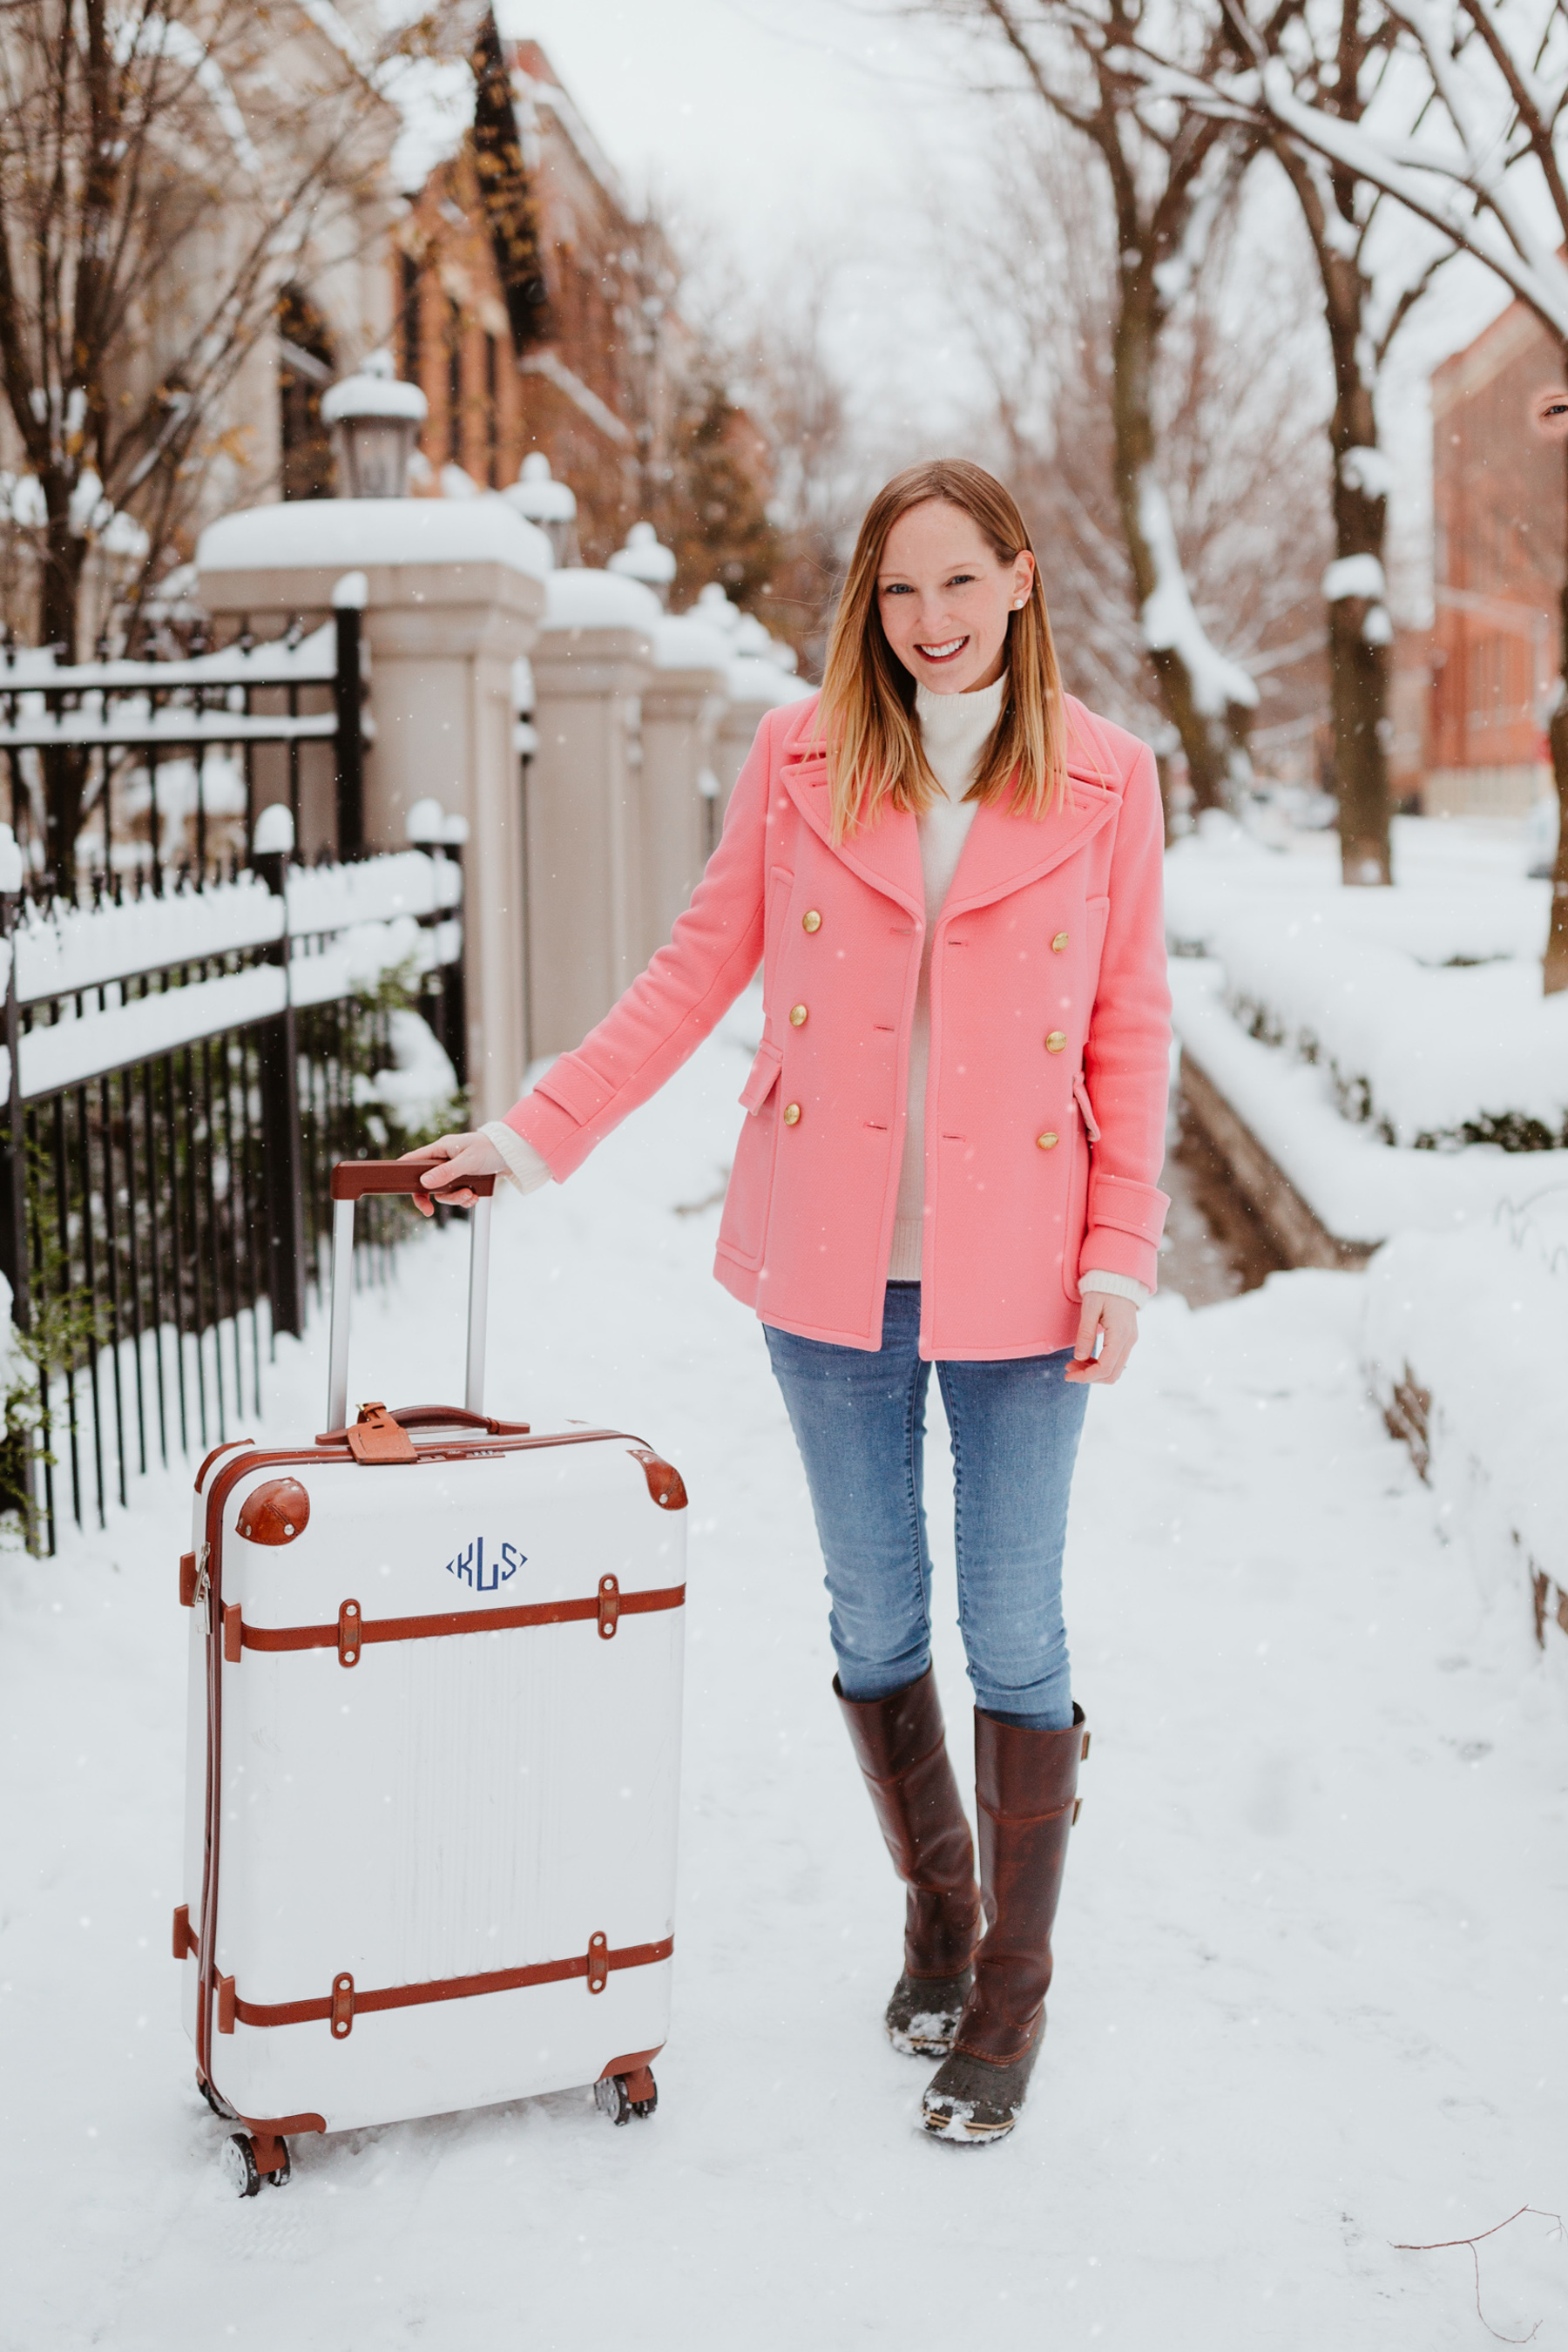 Old J.Crew Peacoat (My exact one is the Majesty, but there are a ton of brand new ones still available. Looking for a cute pink coat that's in stock?! Try this one! OBSESSED, and it's on sale!) / Mark & Graham Terminal One Suitcase /Sorel Slimpack Boots c/o (Also available here and here.) /Gap Soft Wear Skinny Jeans (Favorite non-maternity pair and favorite maternity version, which I'm wearing!)